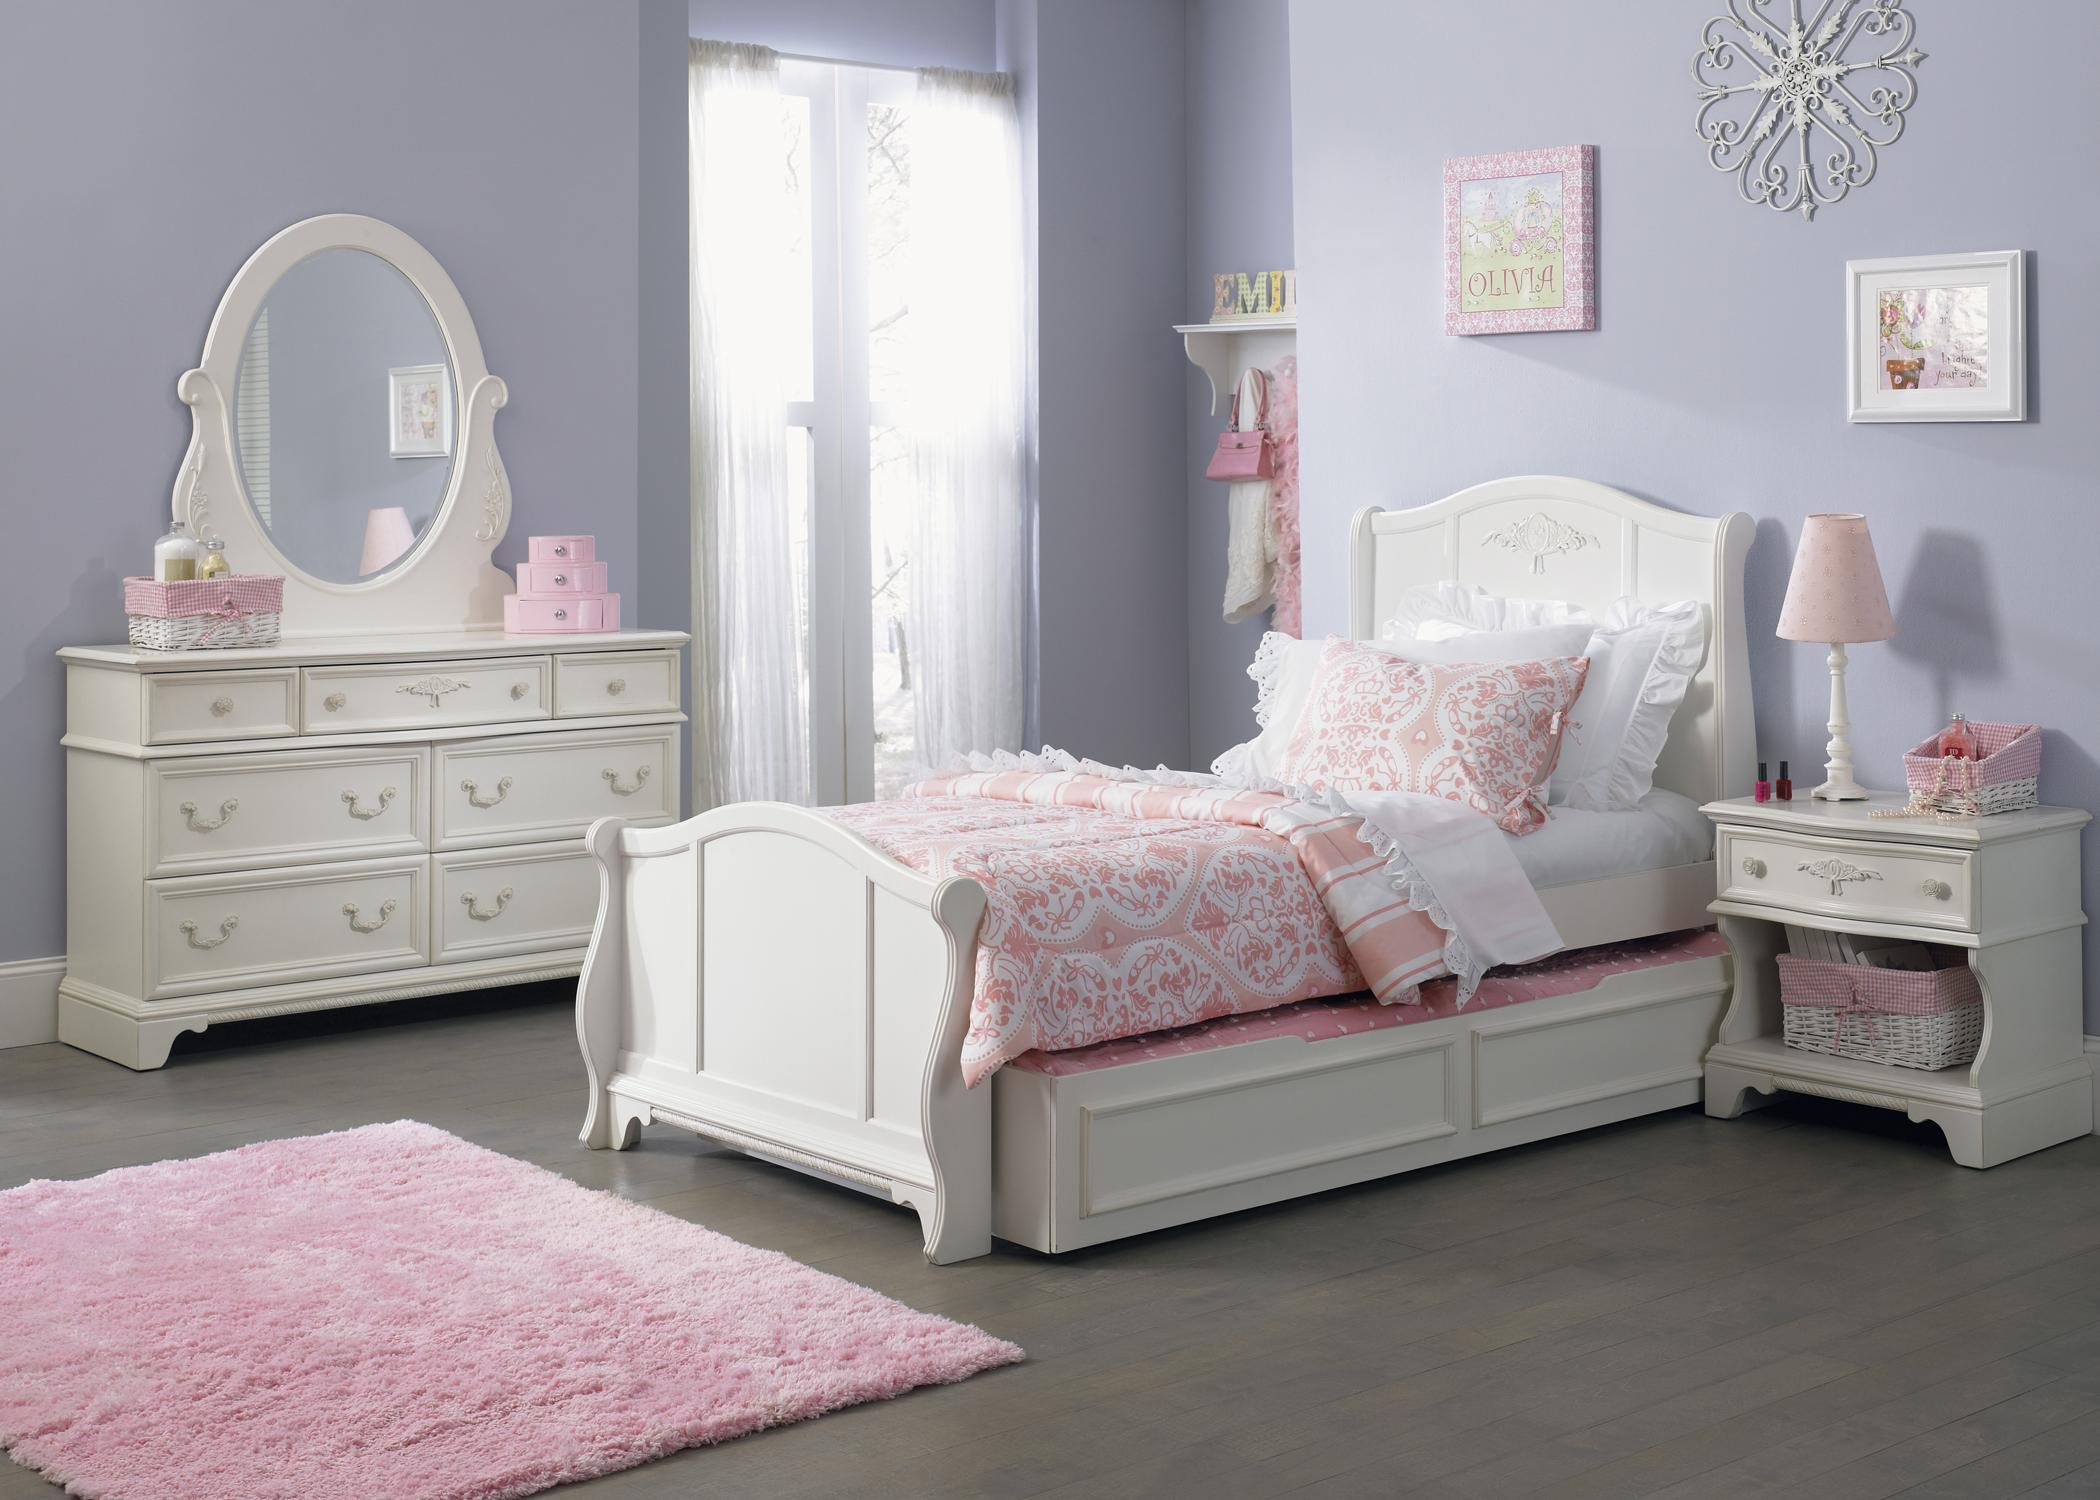 Traditional Twin Size Sleigh Bed With Trundle Drawer By Liberty Furniture Wolf And Gardiner